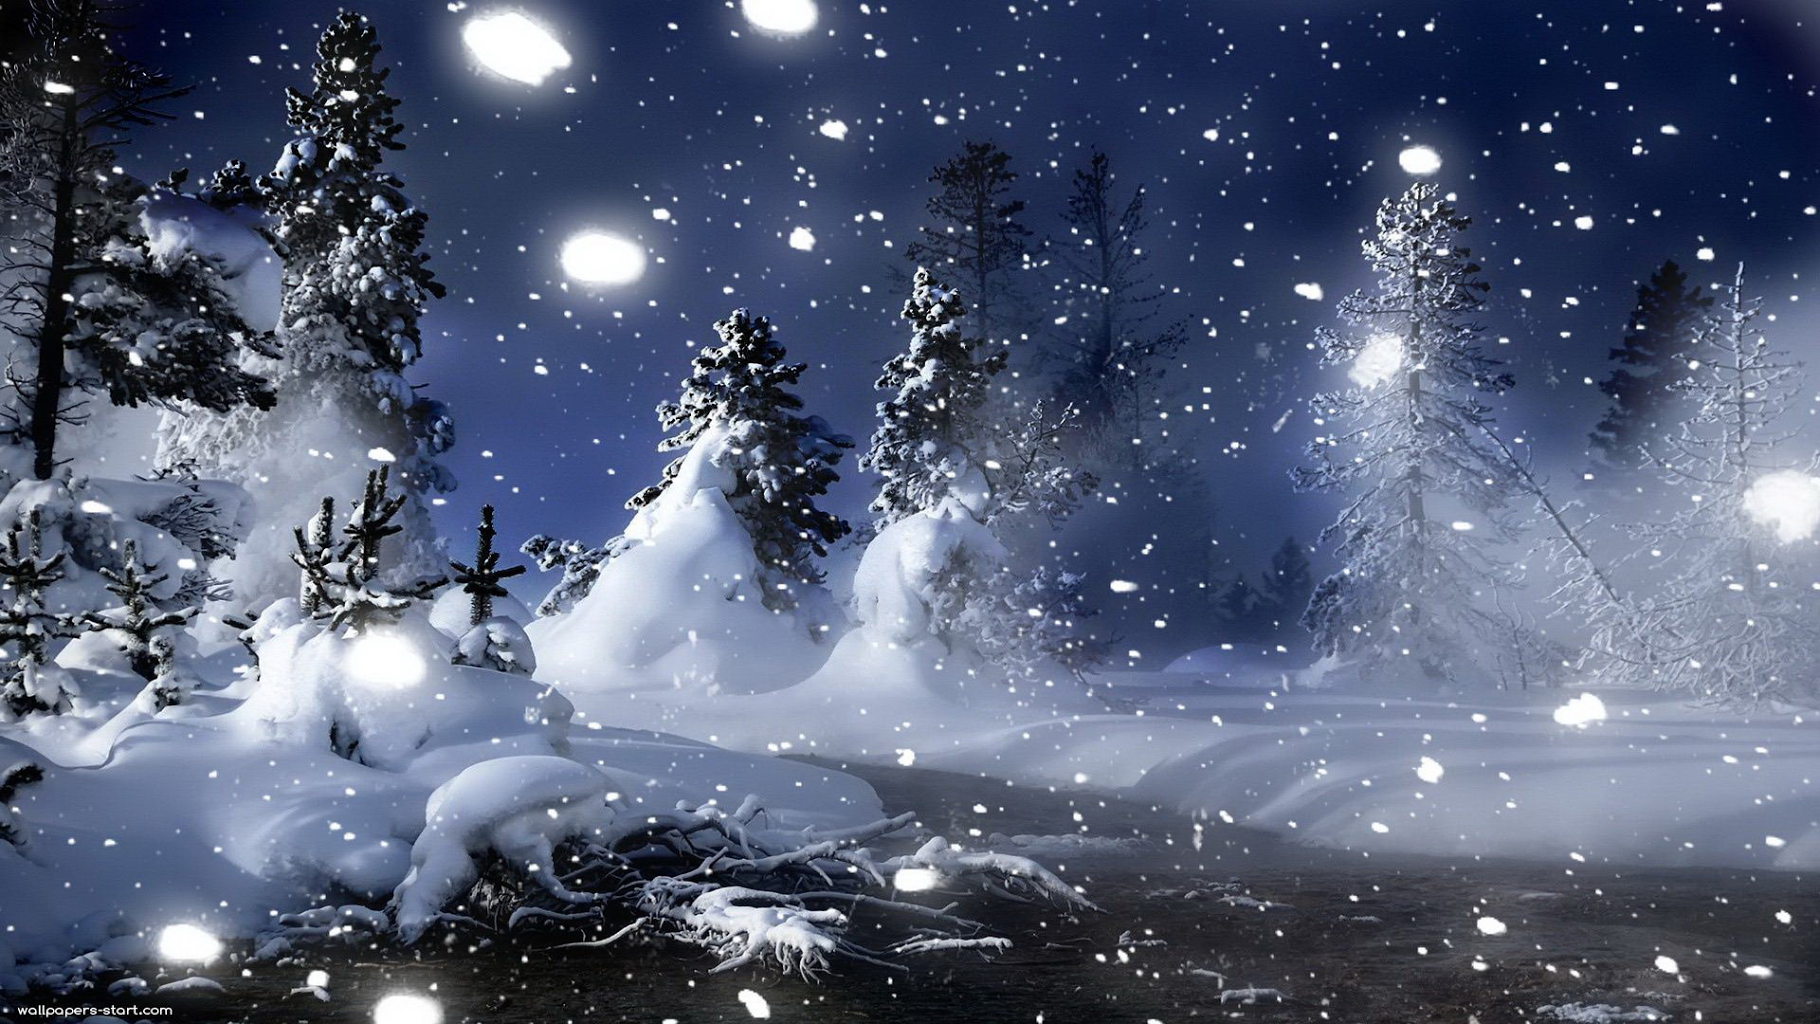 Live Snow Falling Wallpaper